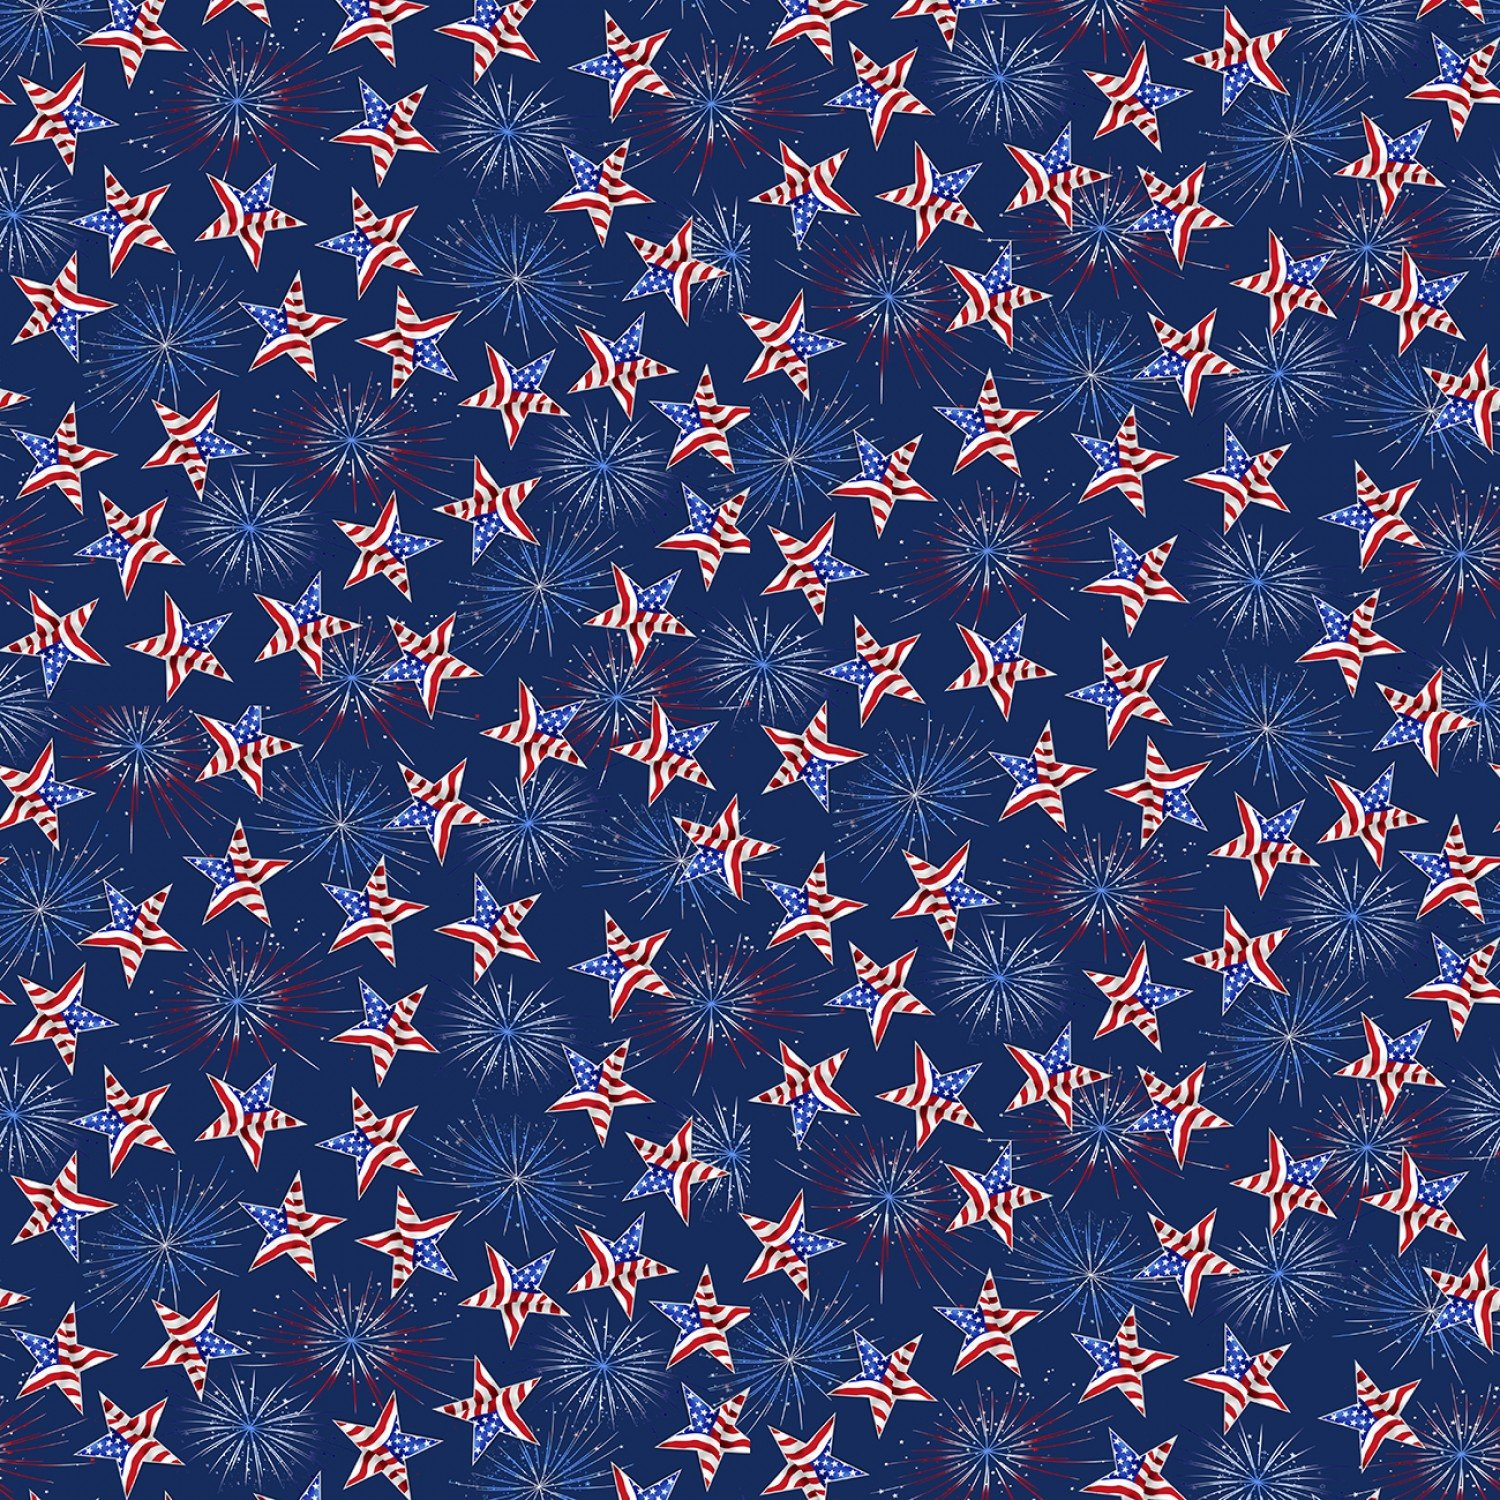 America Home of the Brave 4626-77 Navy Tossed Stars